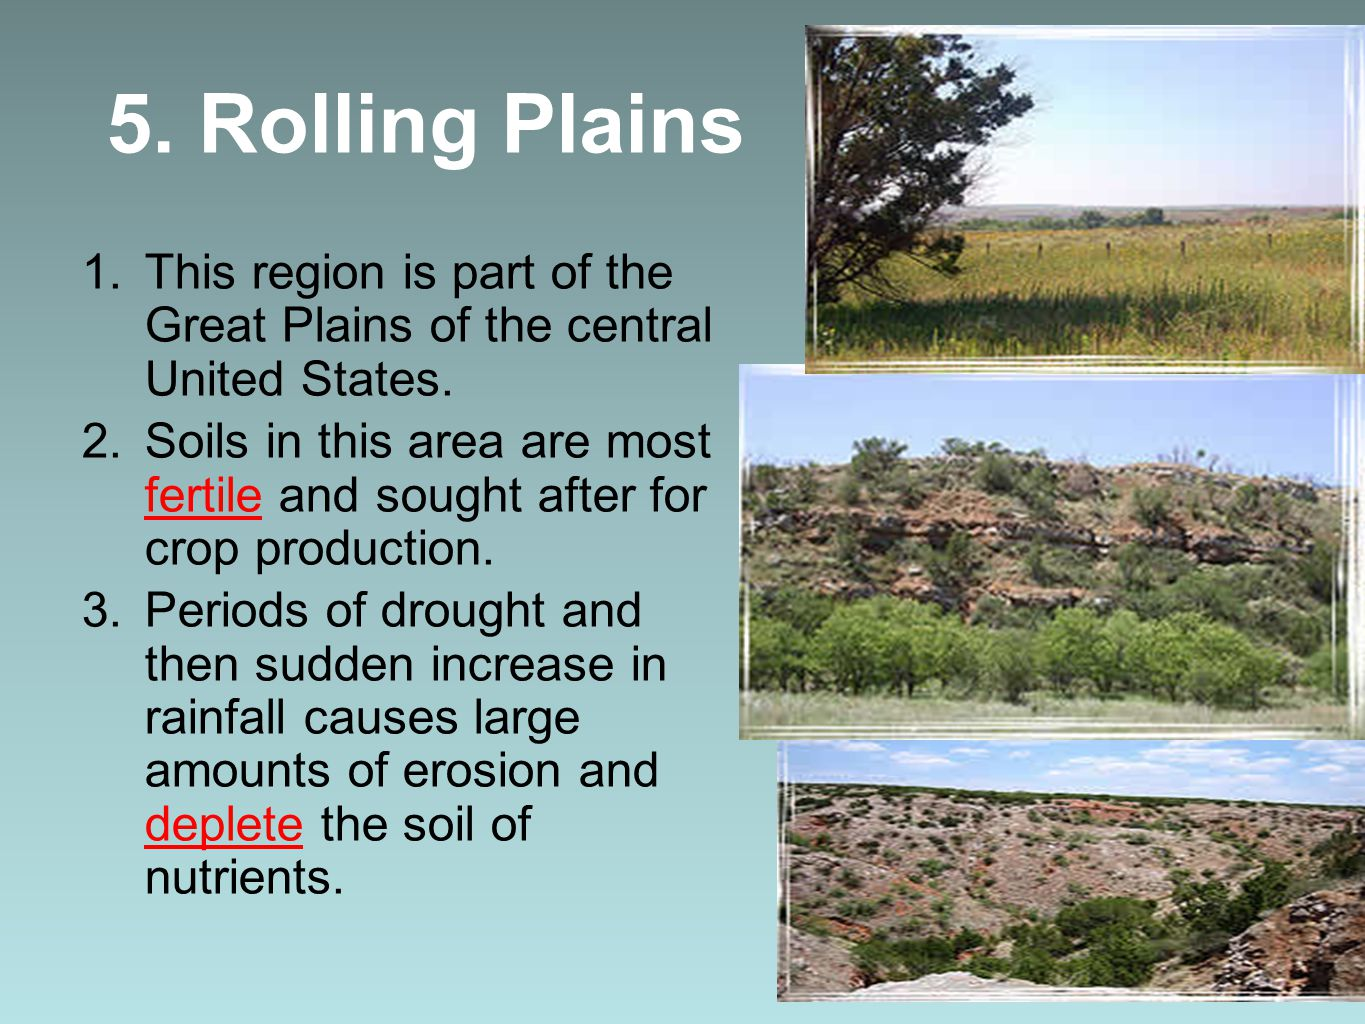 5. Rolling Plains This region is part of the Great Plains of the central United States.